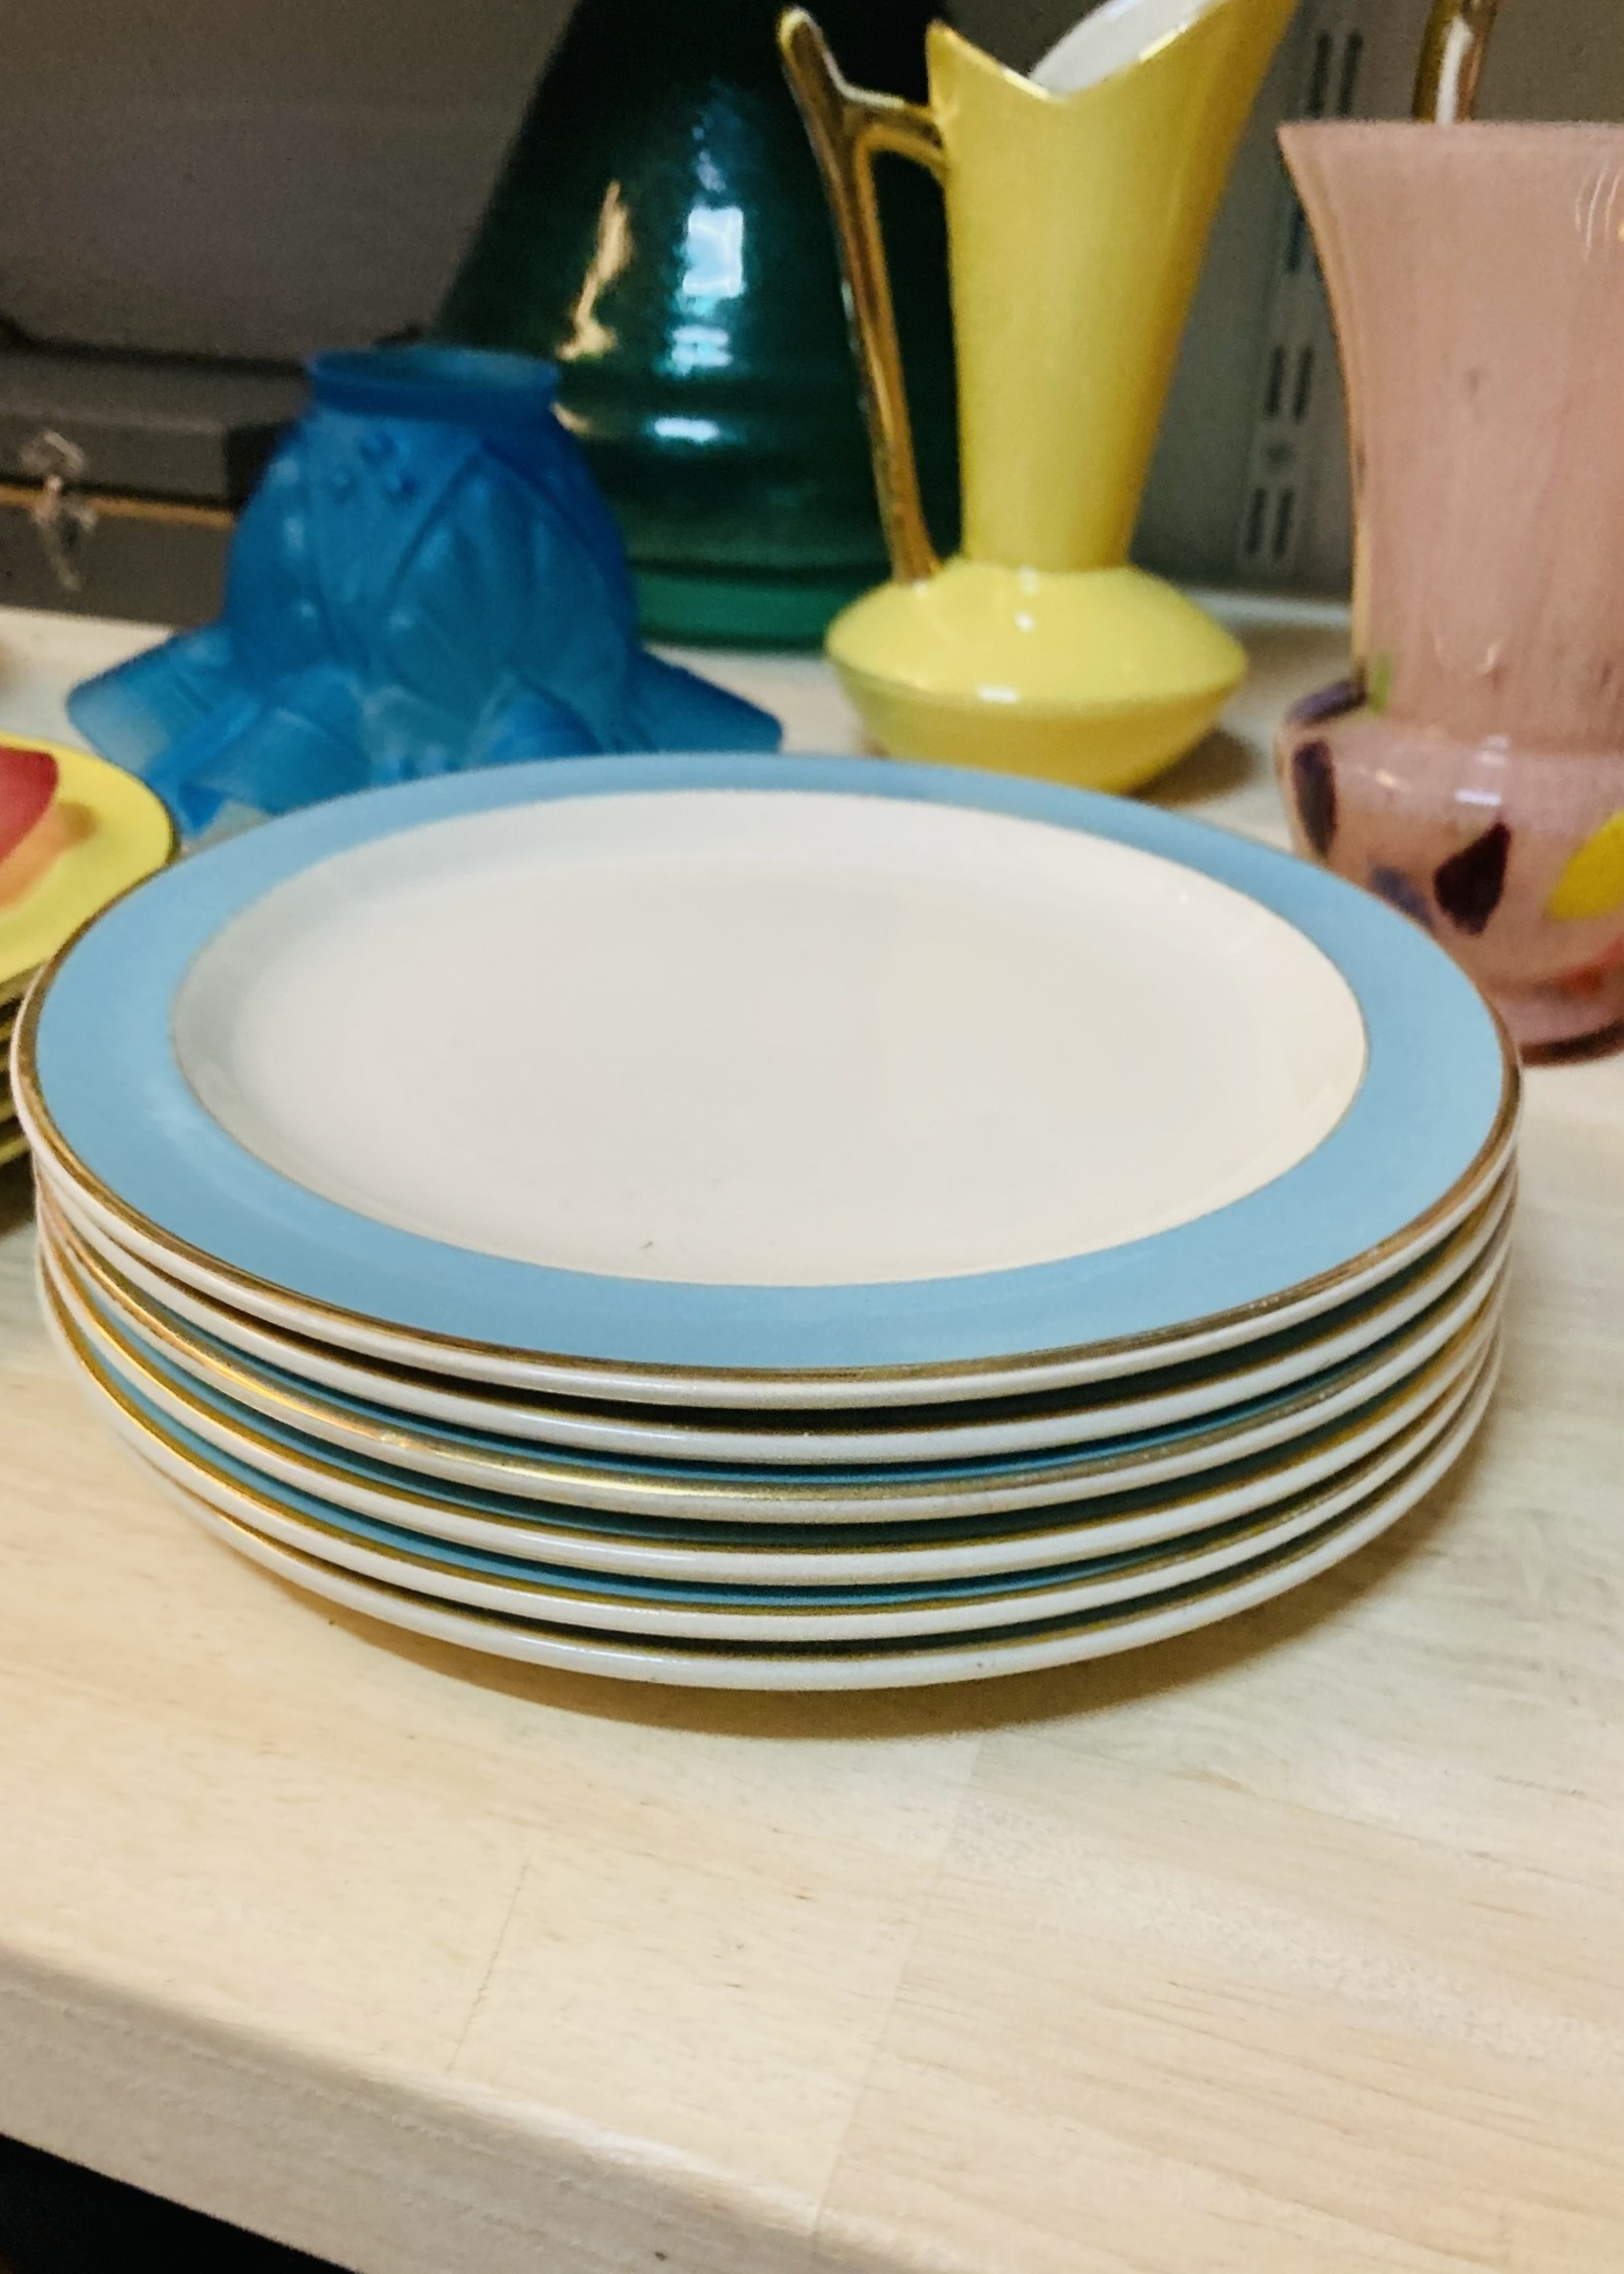 Small Plates from Boch with blue border and golden lign